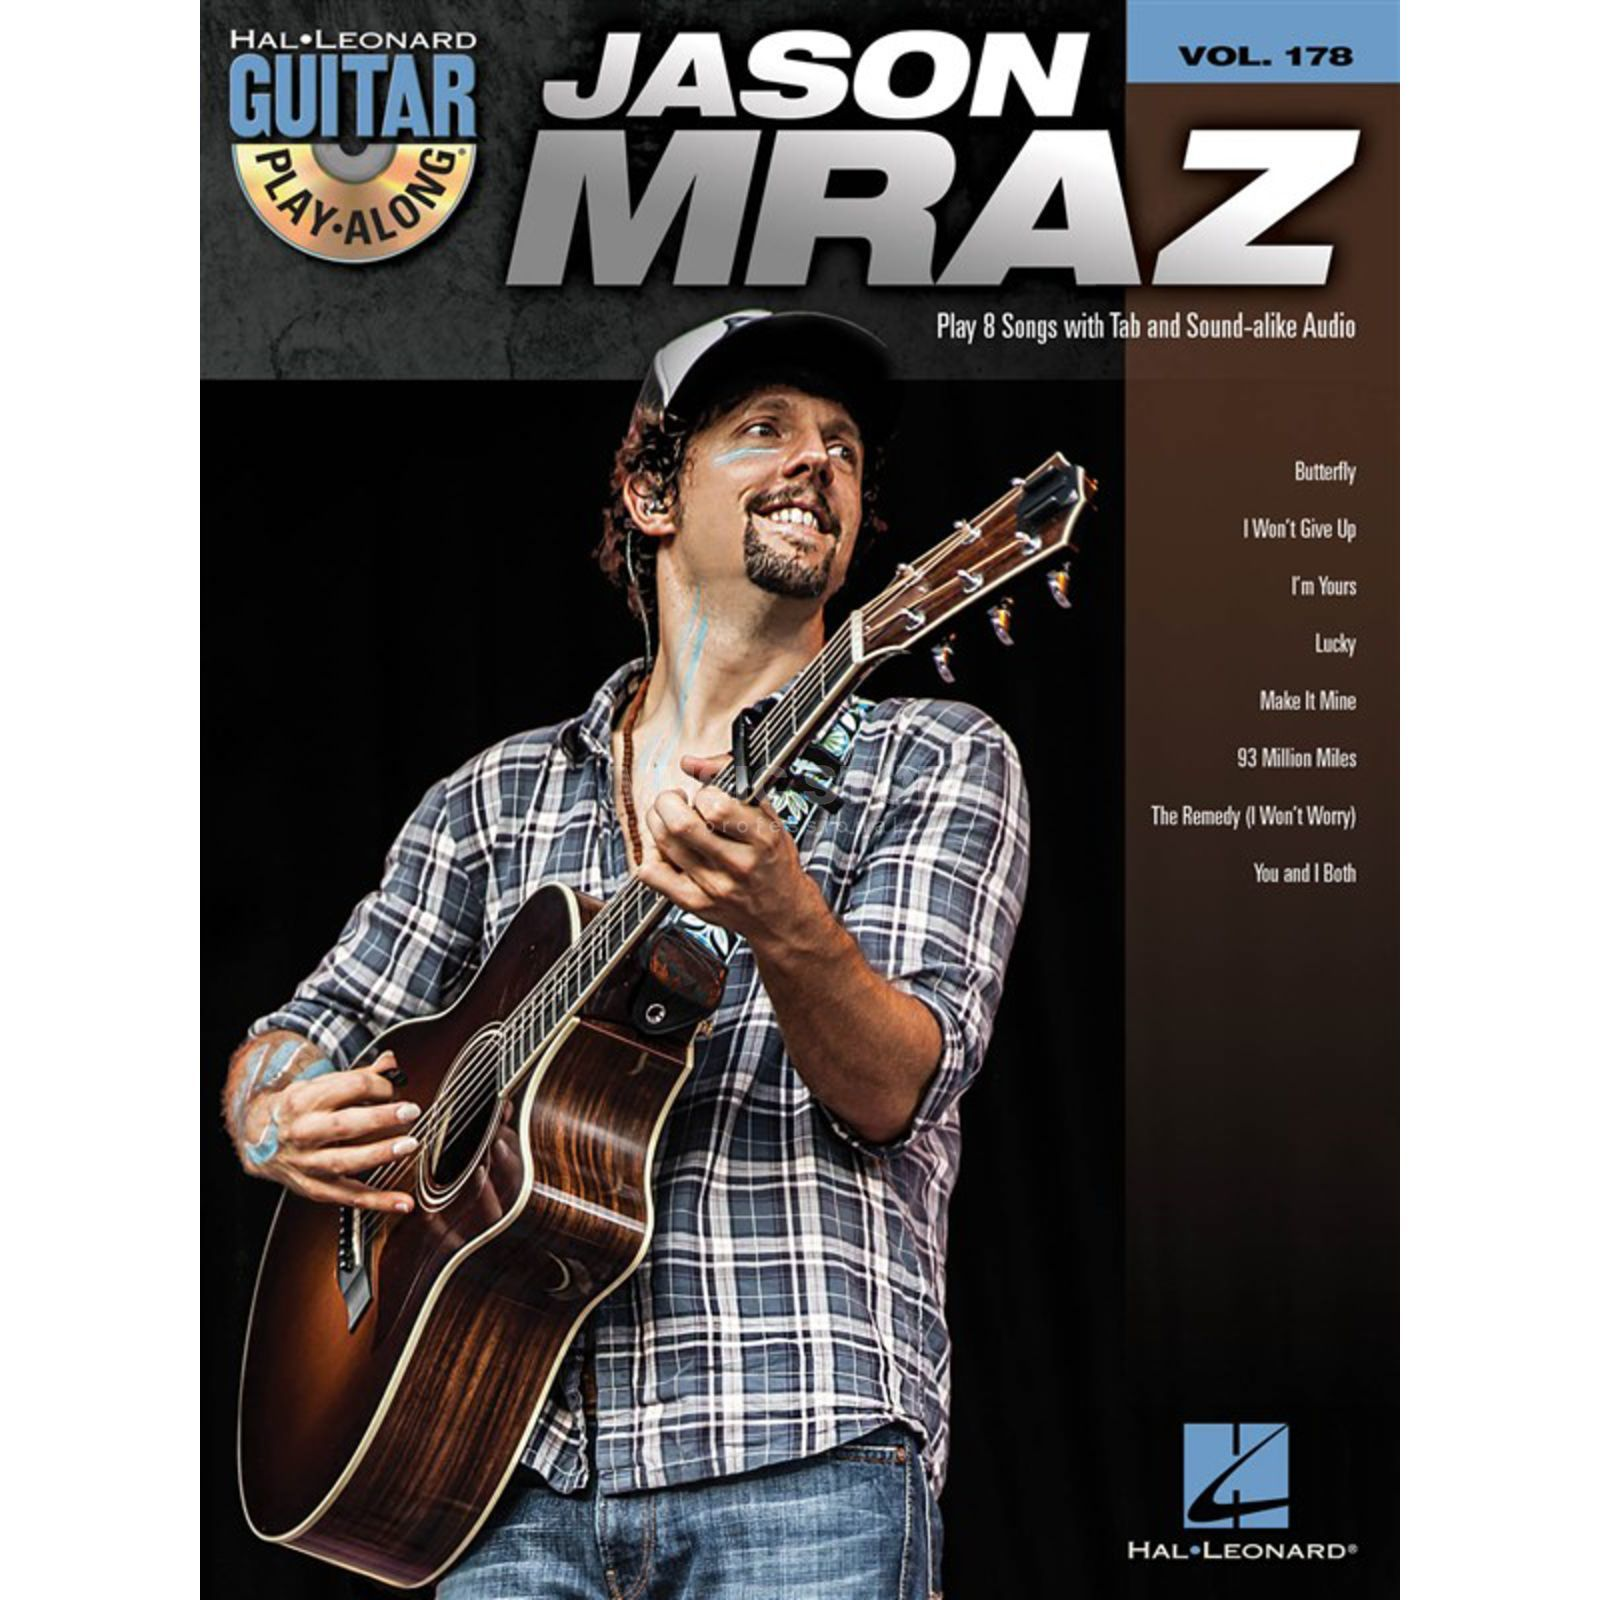 Hal Leonard Guitar Play-Along: Jason Mraz Vol. 178, TAB und CD Produktbillede